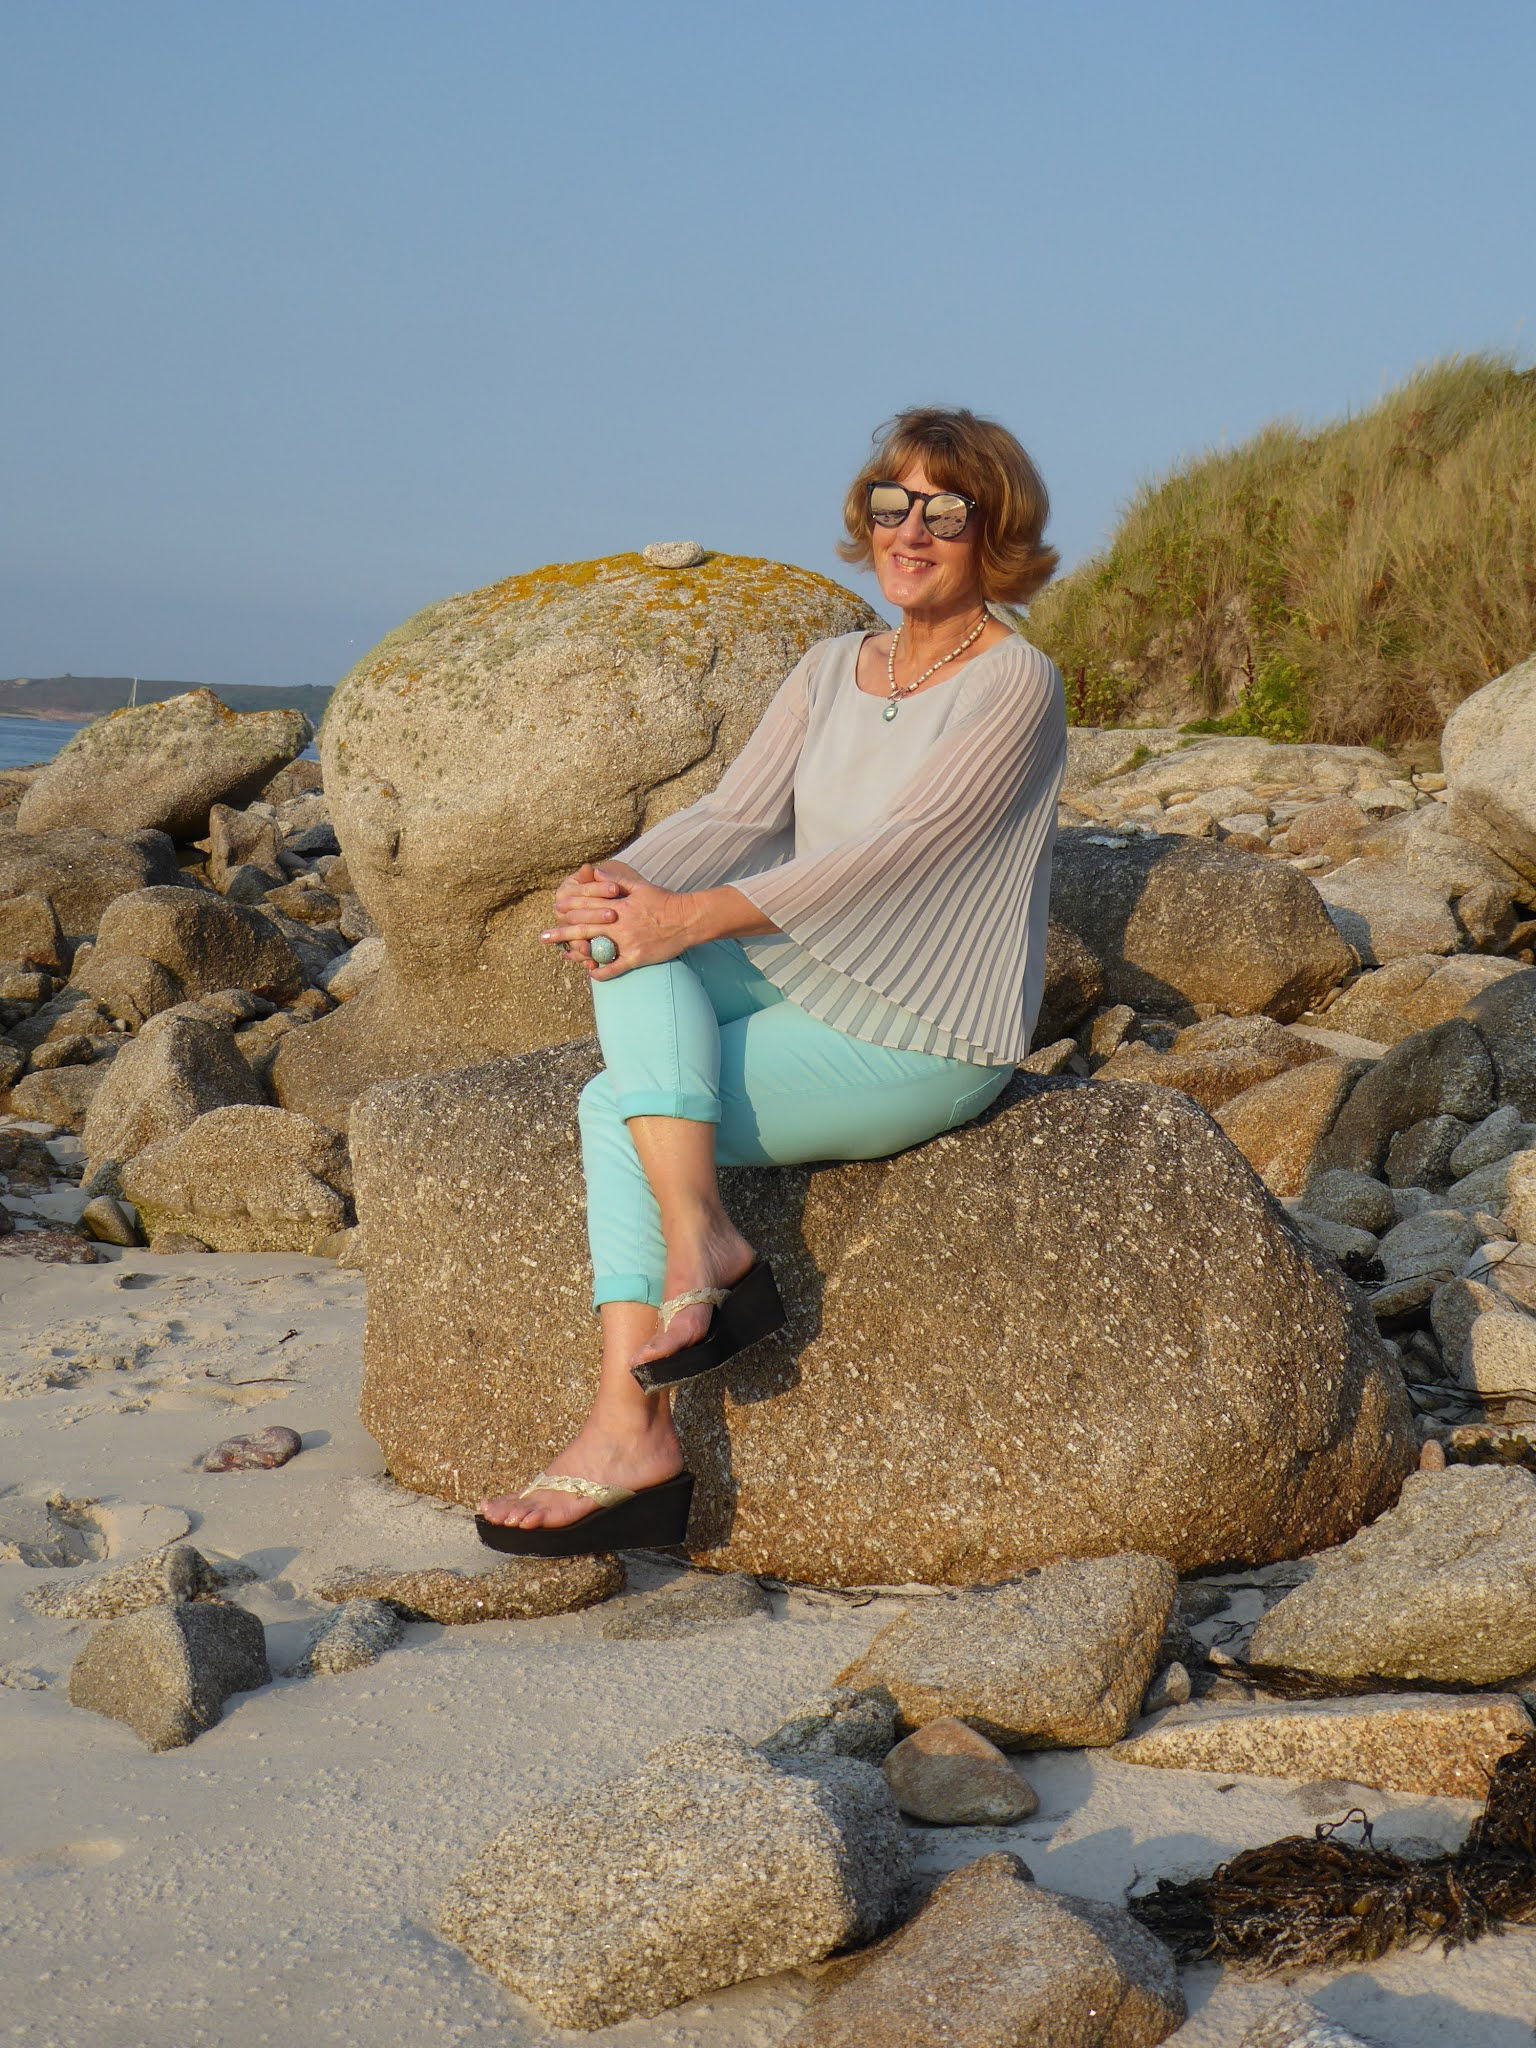 Anna from Anna's Island Style in aquamarine trousers and a thrifted top with statement sleeves